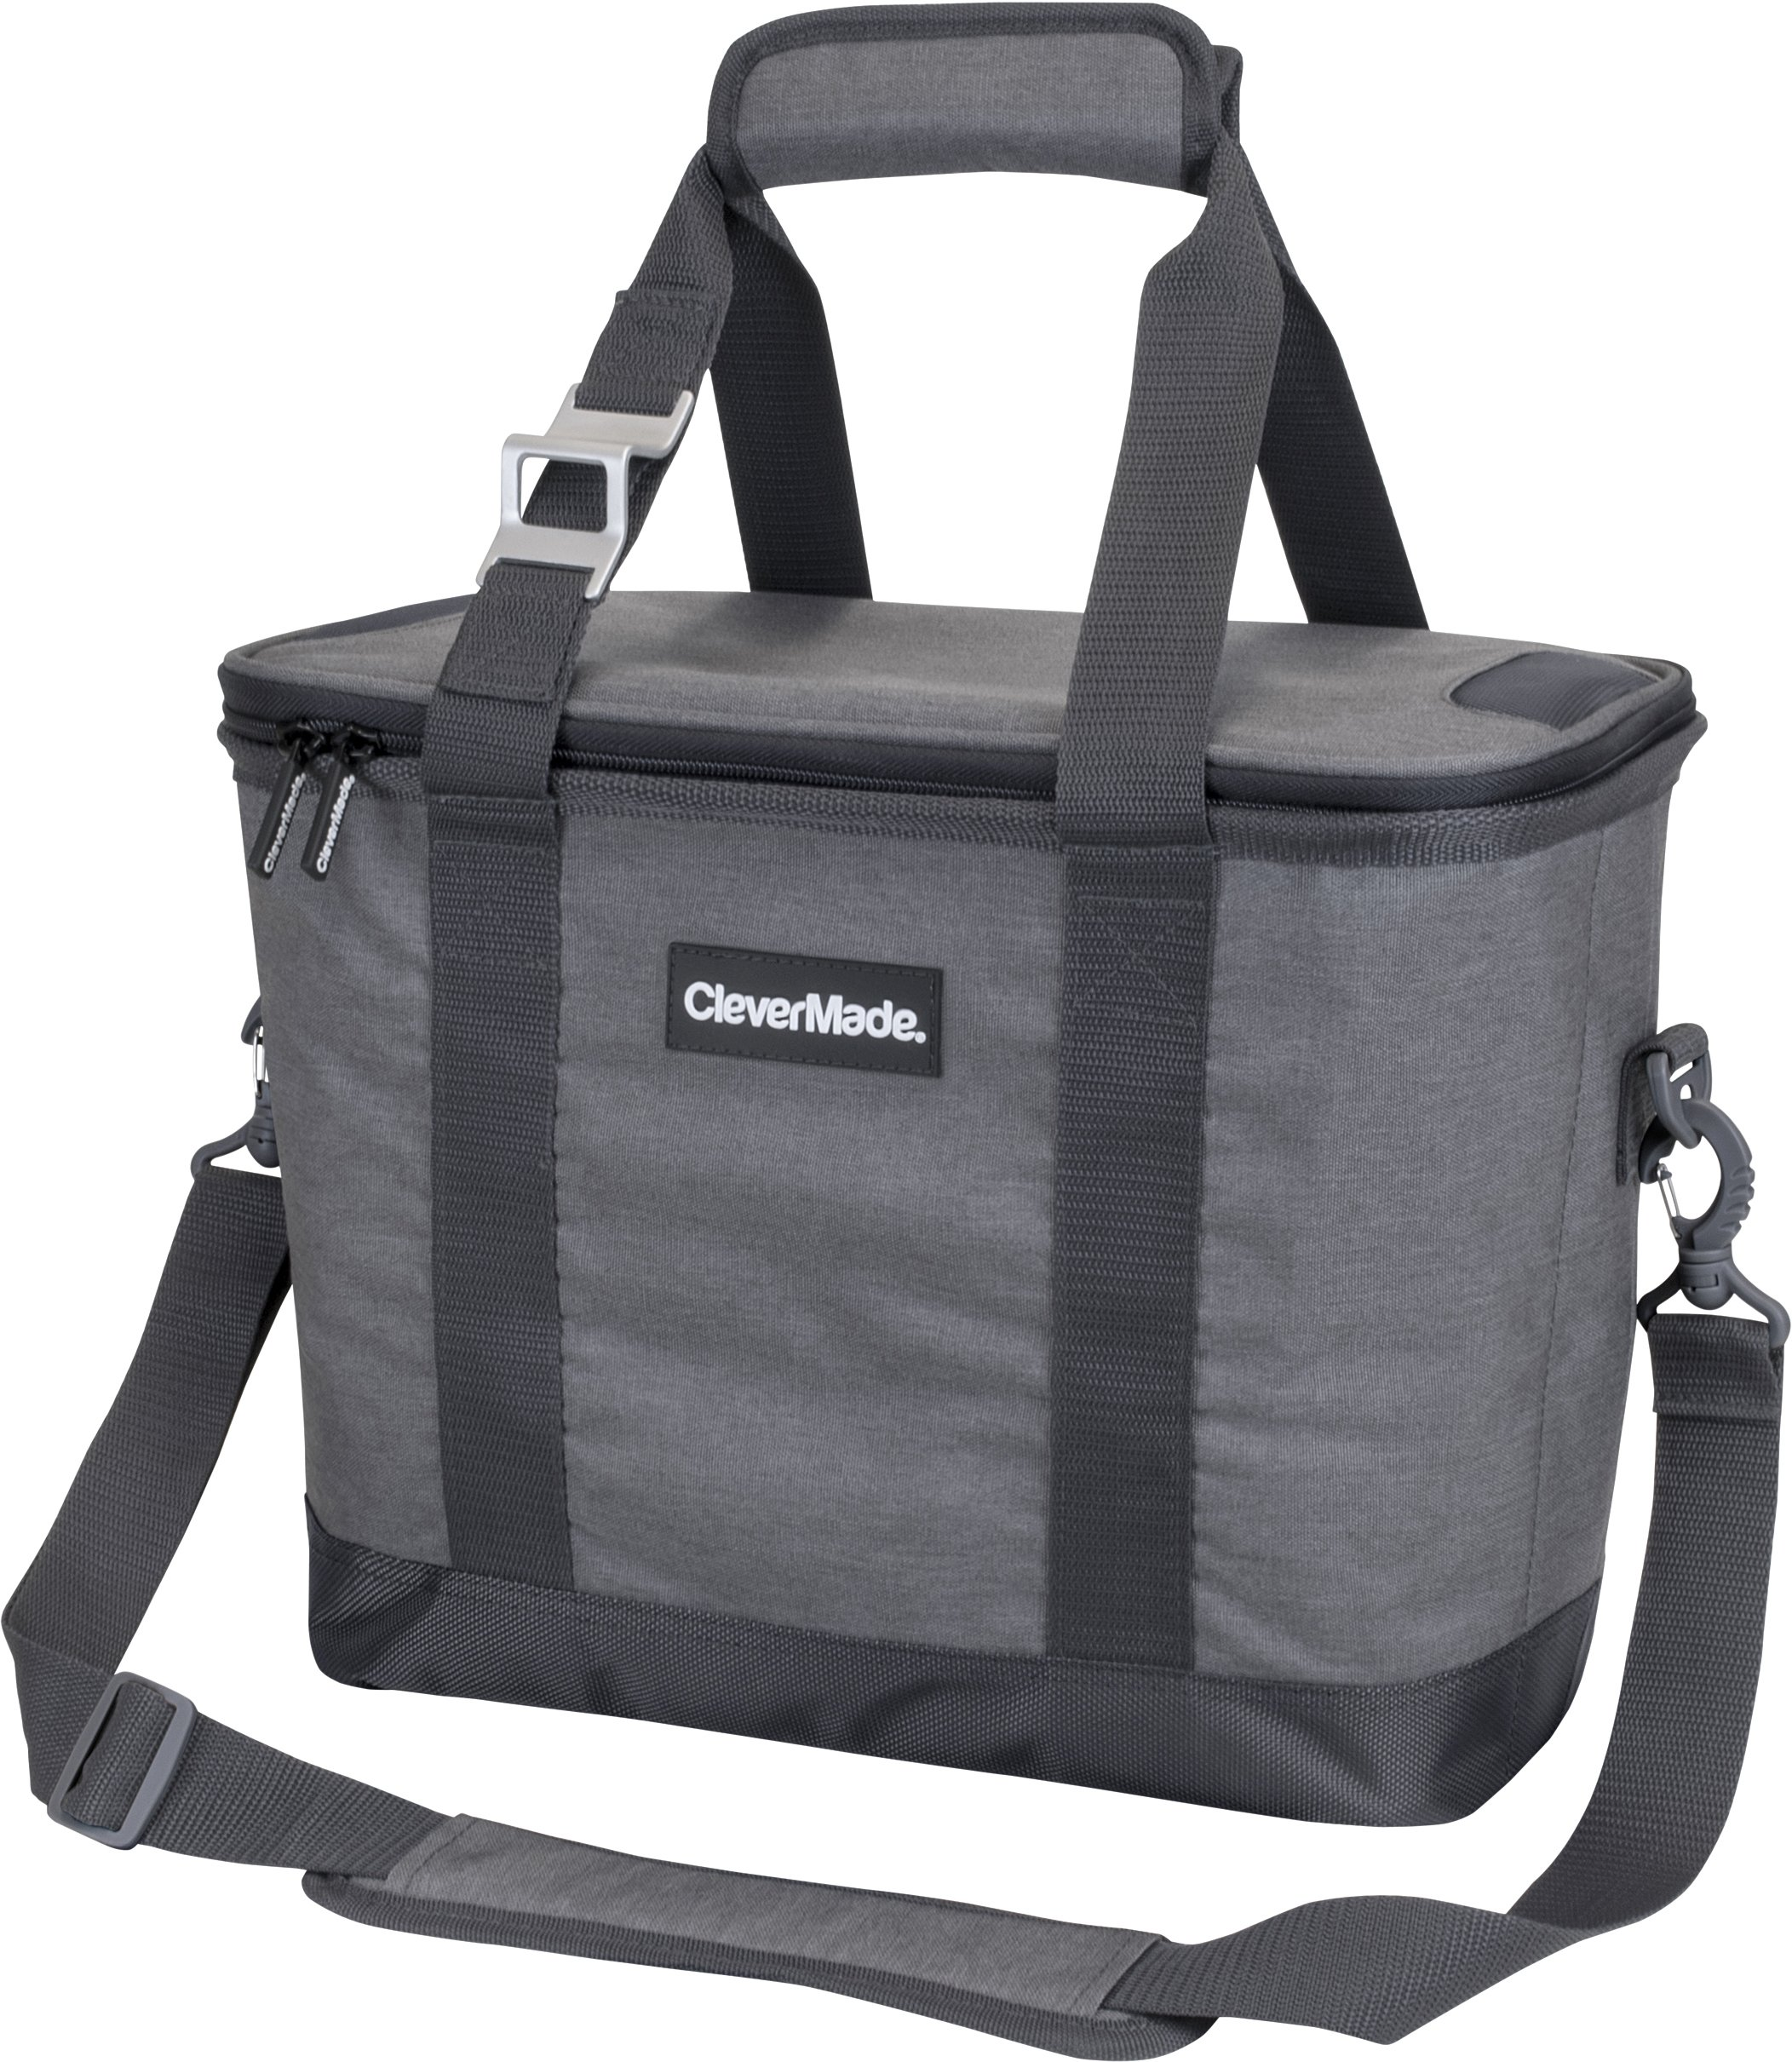 CDM product CleverMade Collapsible Cooler Bag with Shoulder Strap: Insulated Leakproof 30 Can Portable Soft Beverage Tote with Bottle Opener for Camping, Lunch, Beach, Picnic; Grey/Charcoal big image